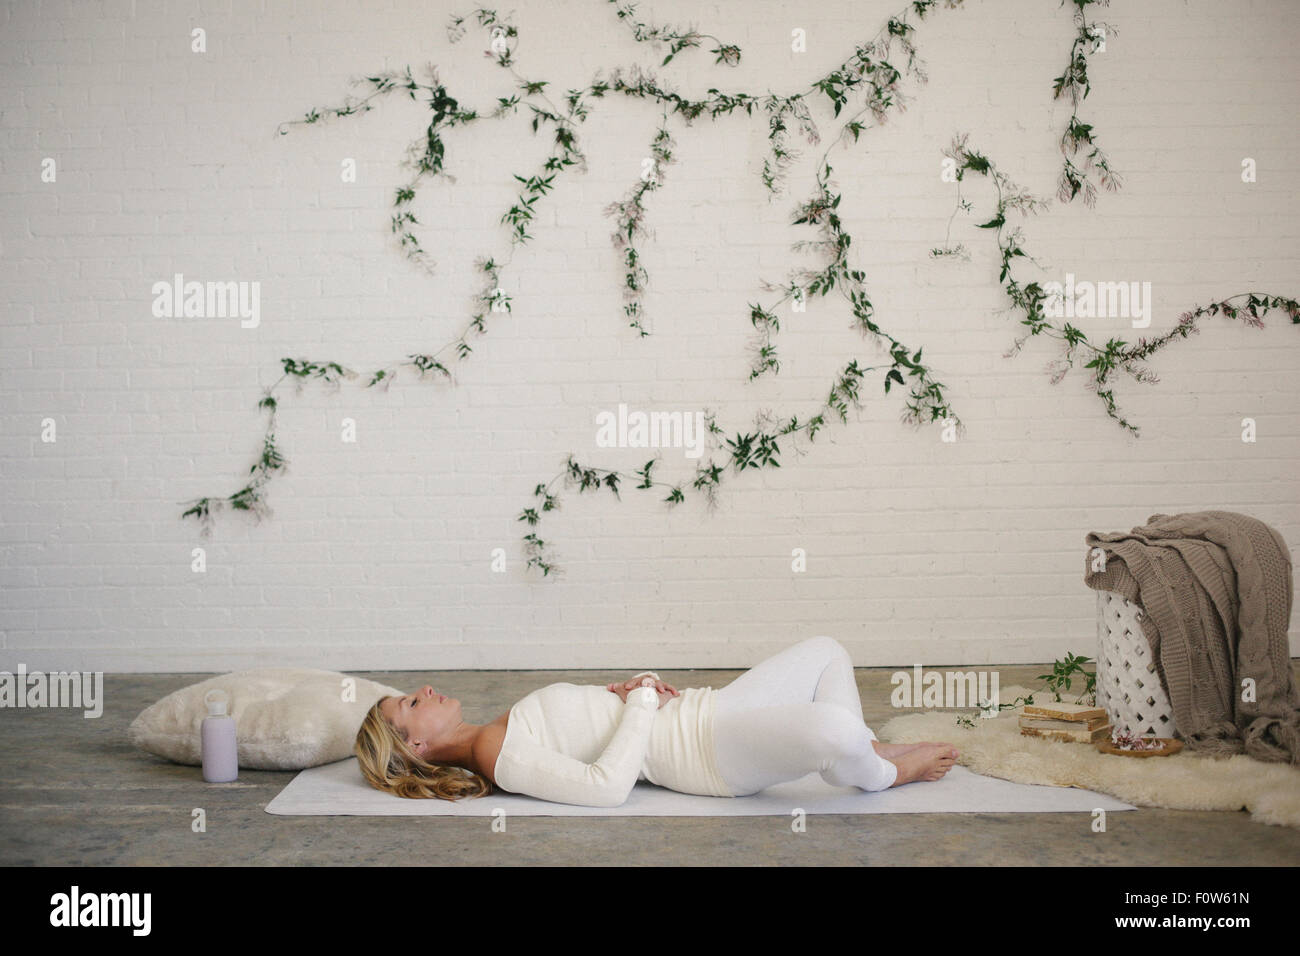 A blonde woman in a white leotard and leggings, lying on a white mat in a room. A creeper plant on the wall behind - Stock Image